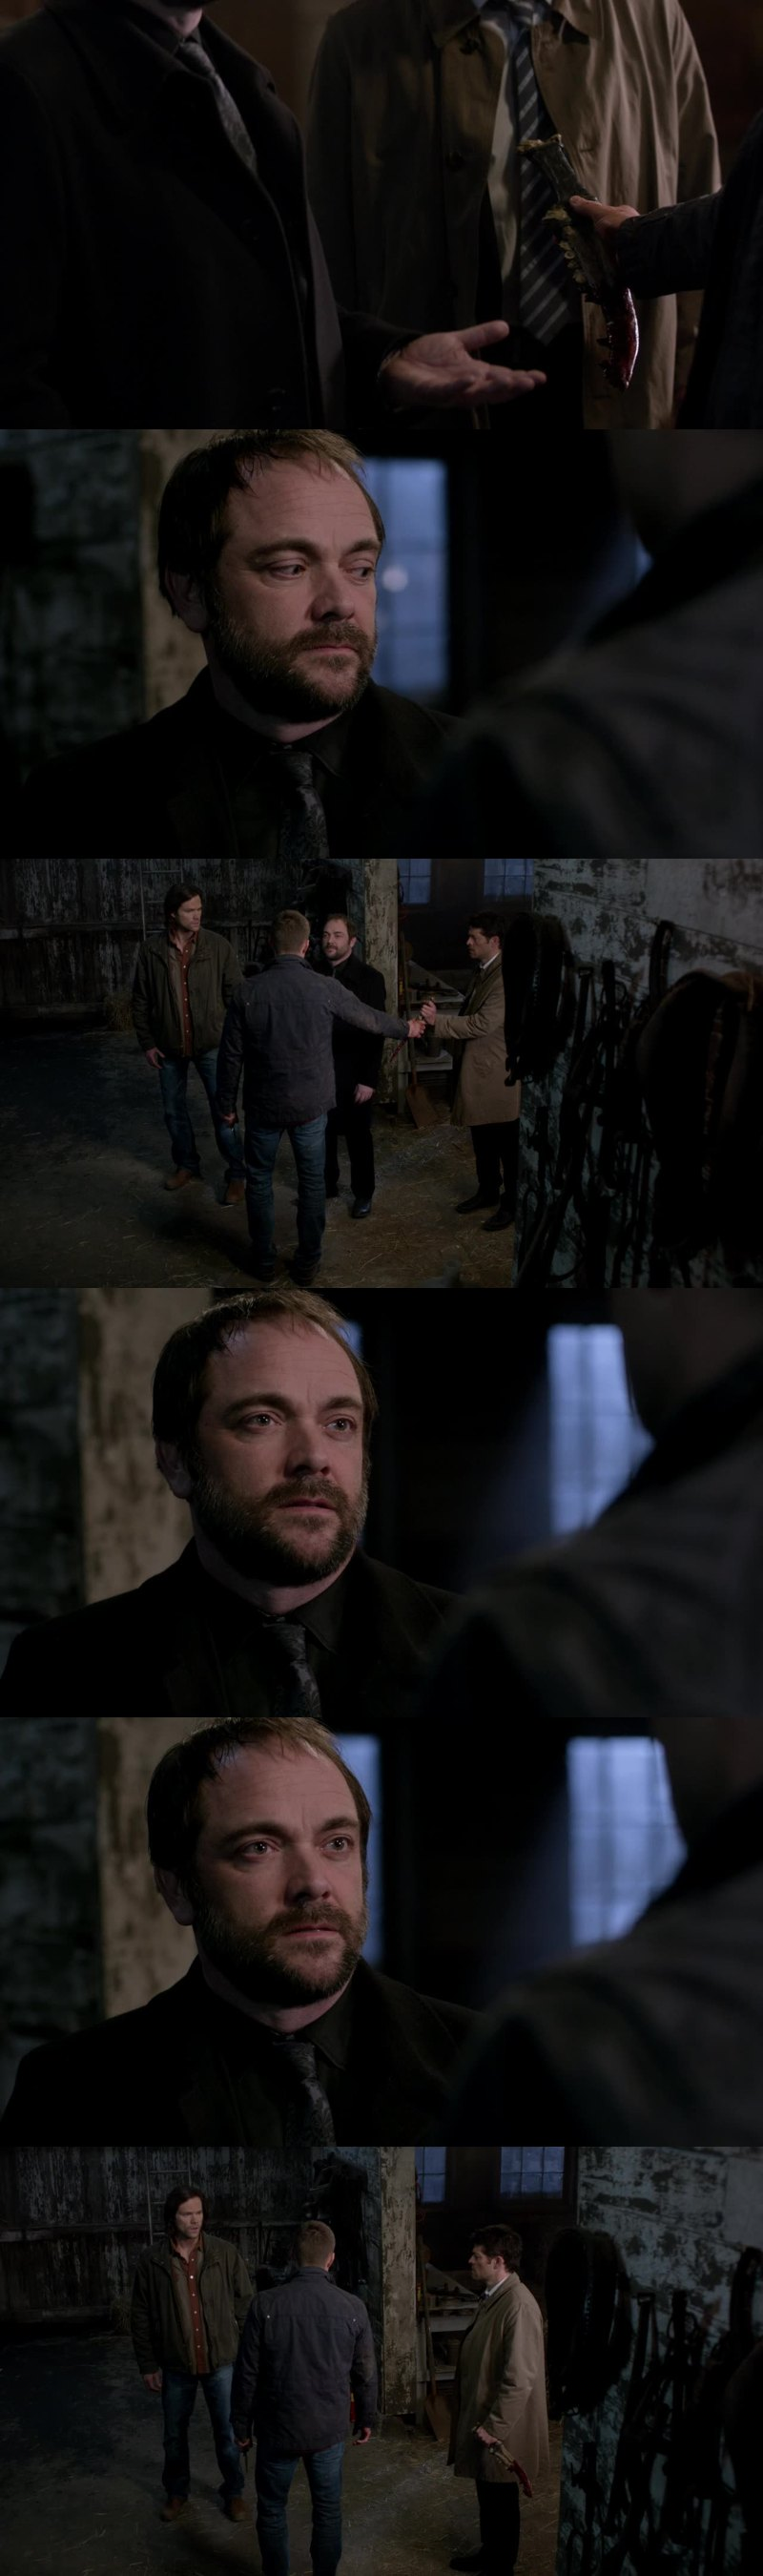 poor Crowley 😭😭 HE JUST WANTS TO BE LOVED